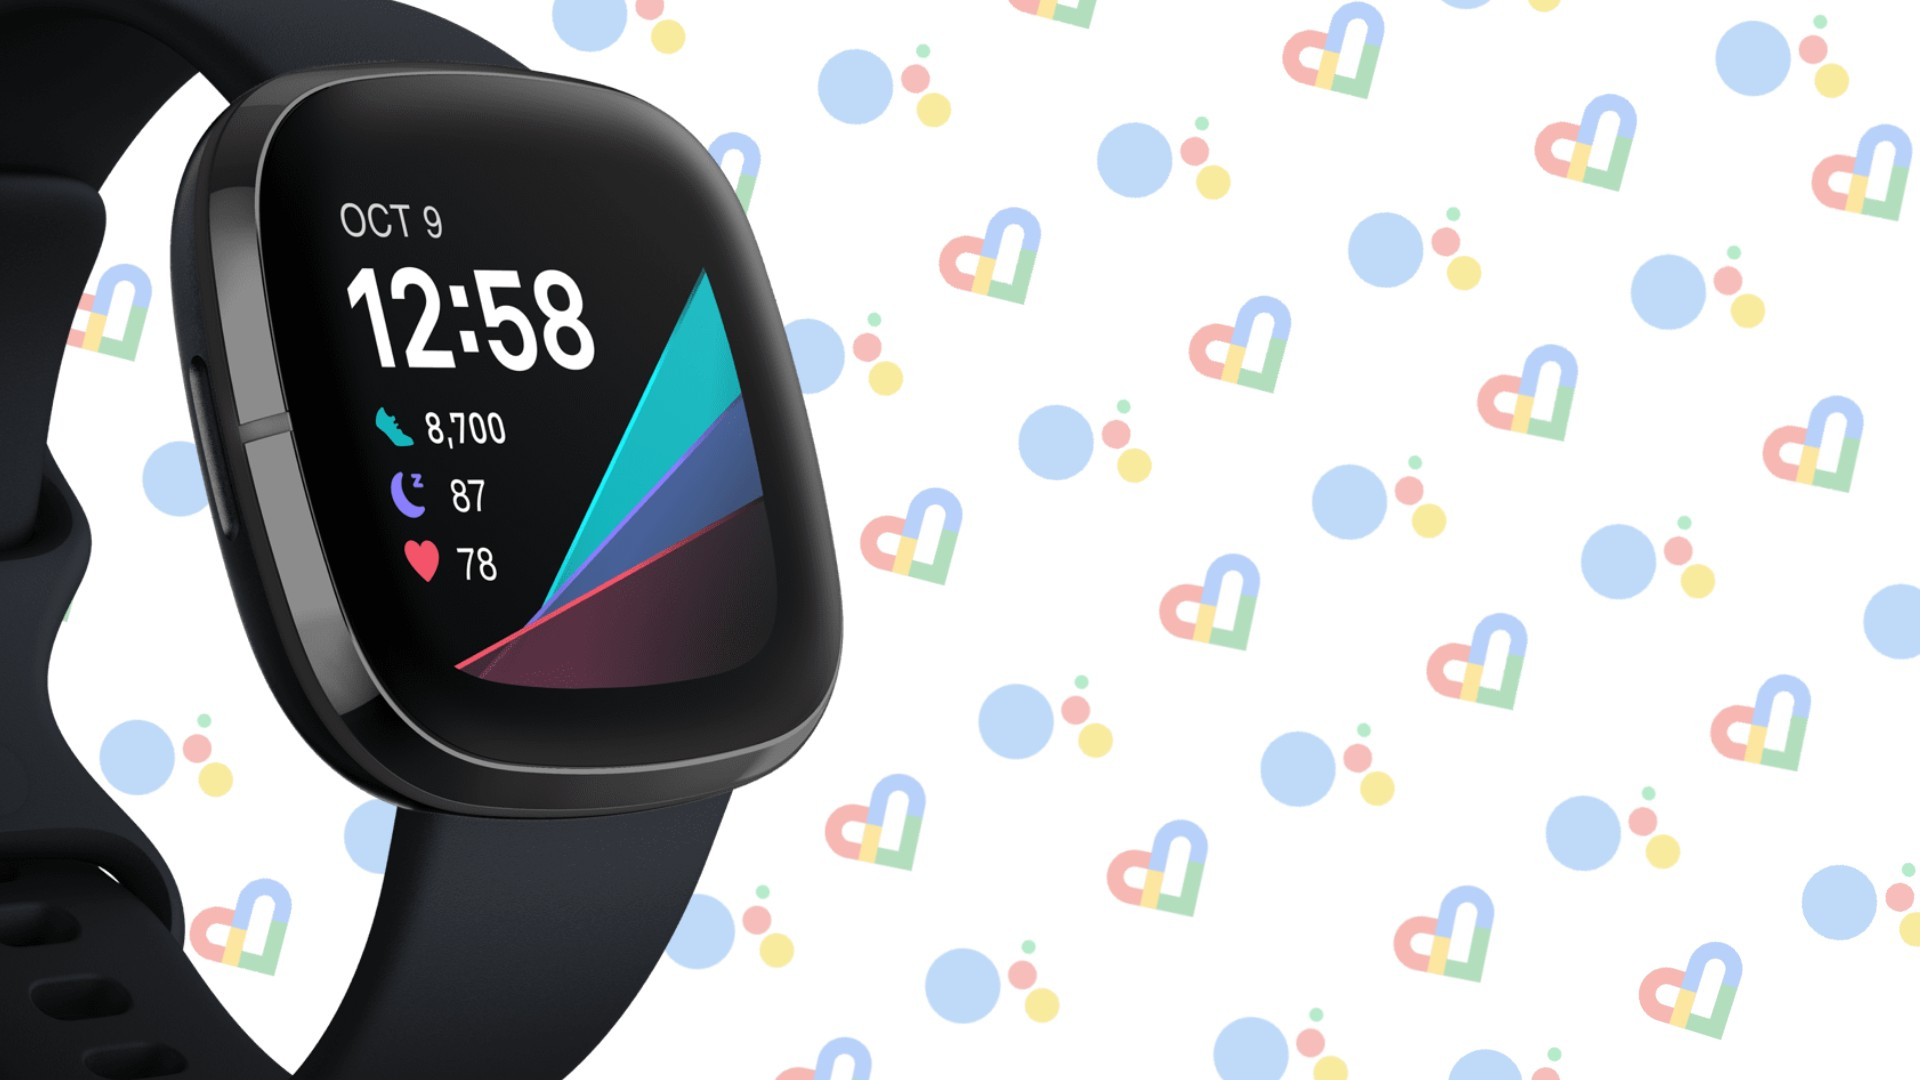 A new version of Wear OS will be announced during Google I/O today